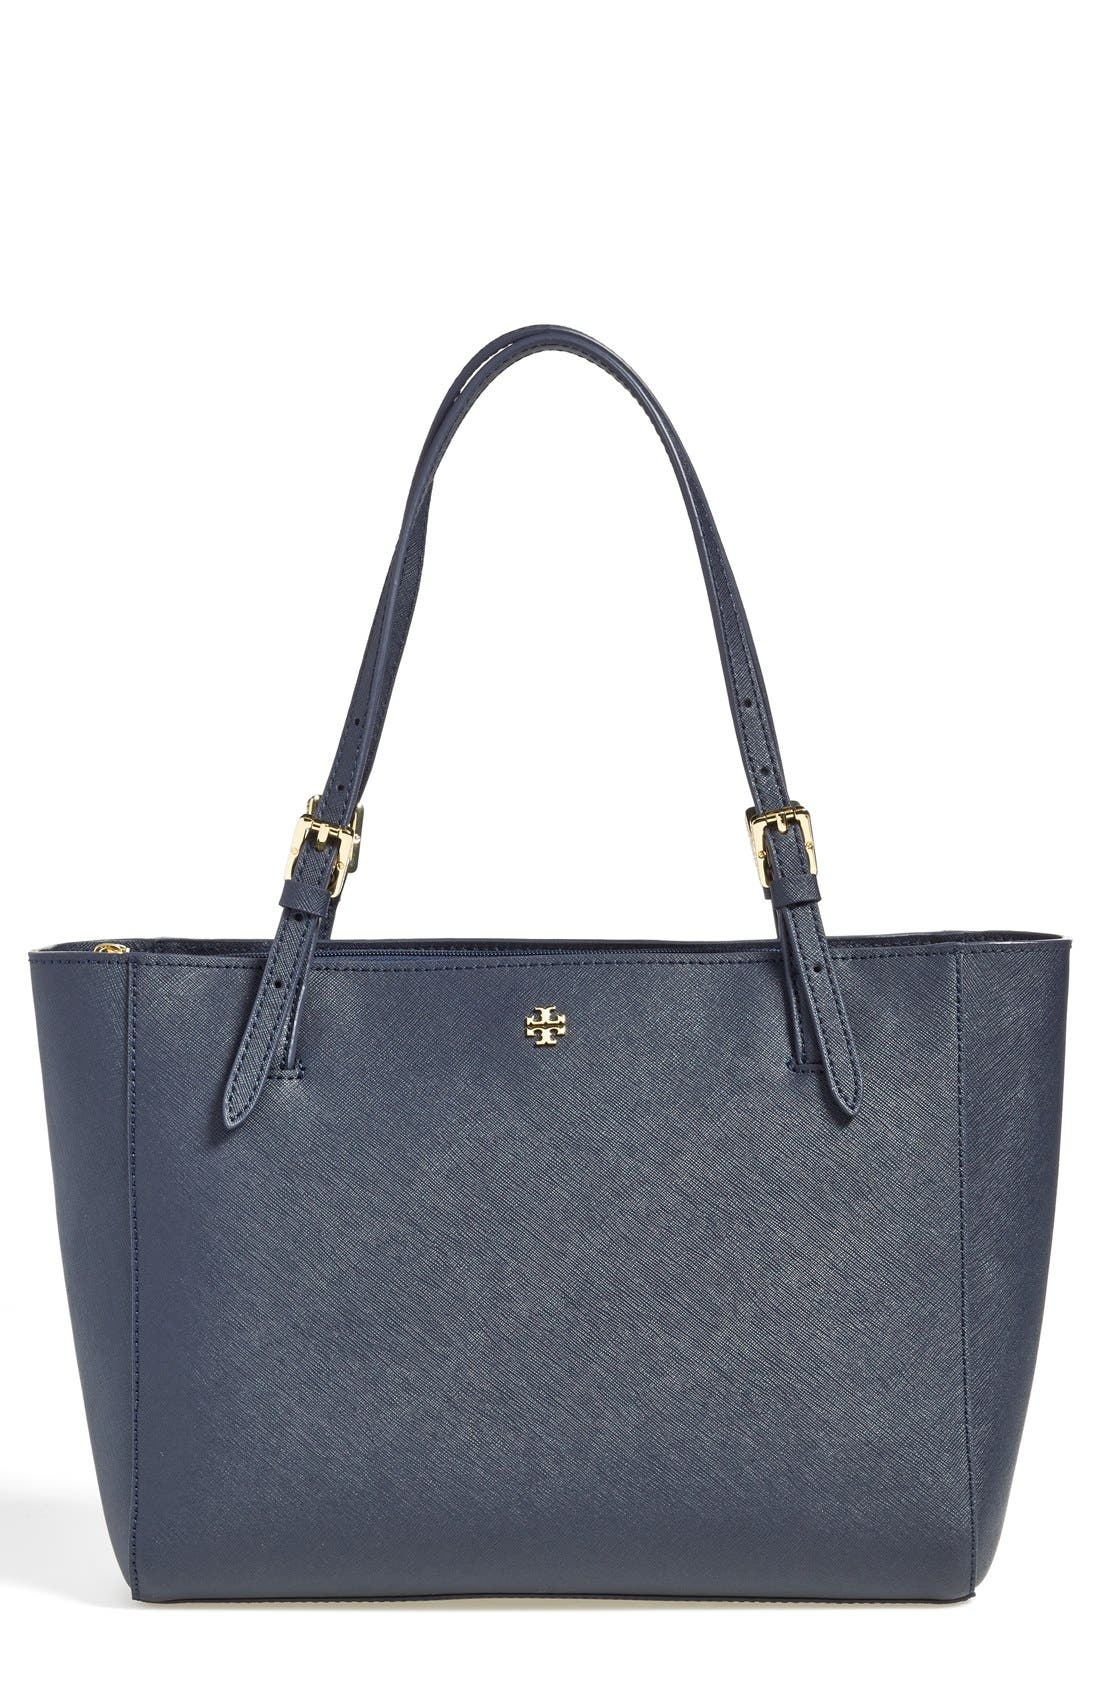 'Small York' Saffiano Leather Buckle Tote,                             Main thumbnail 10, color,